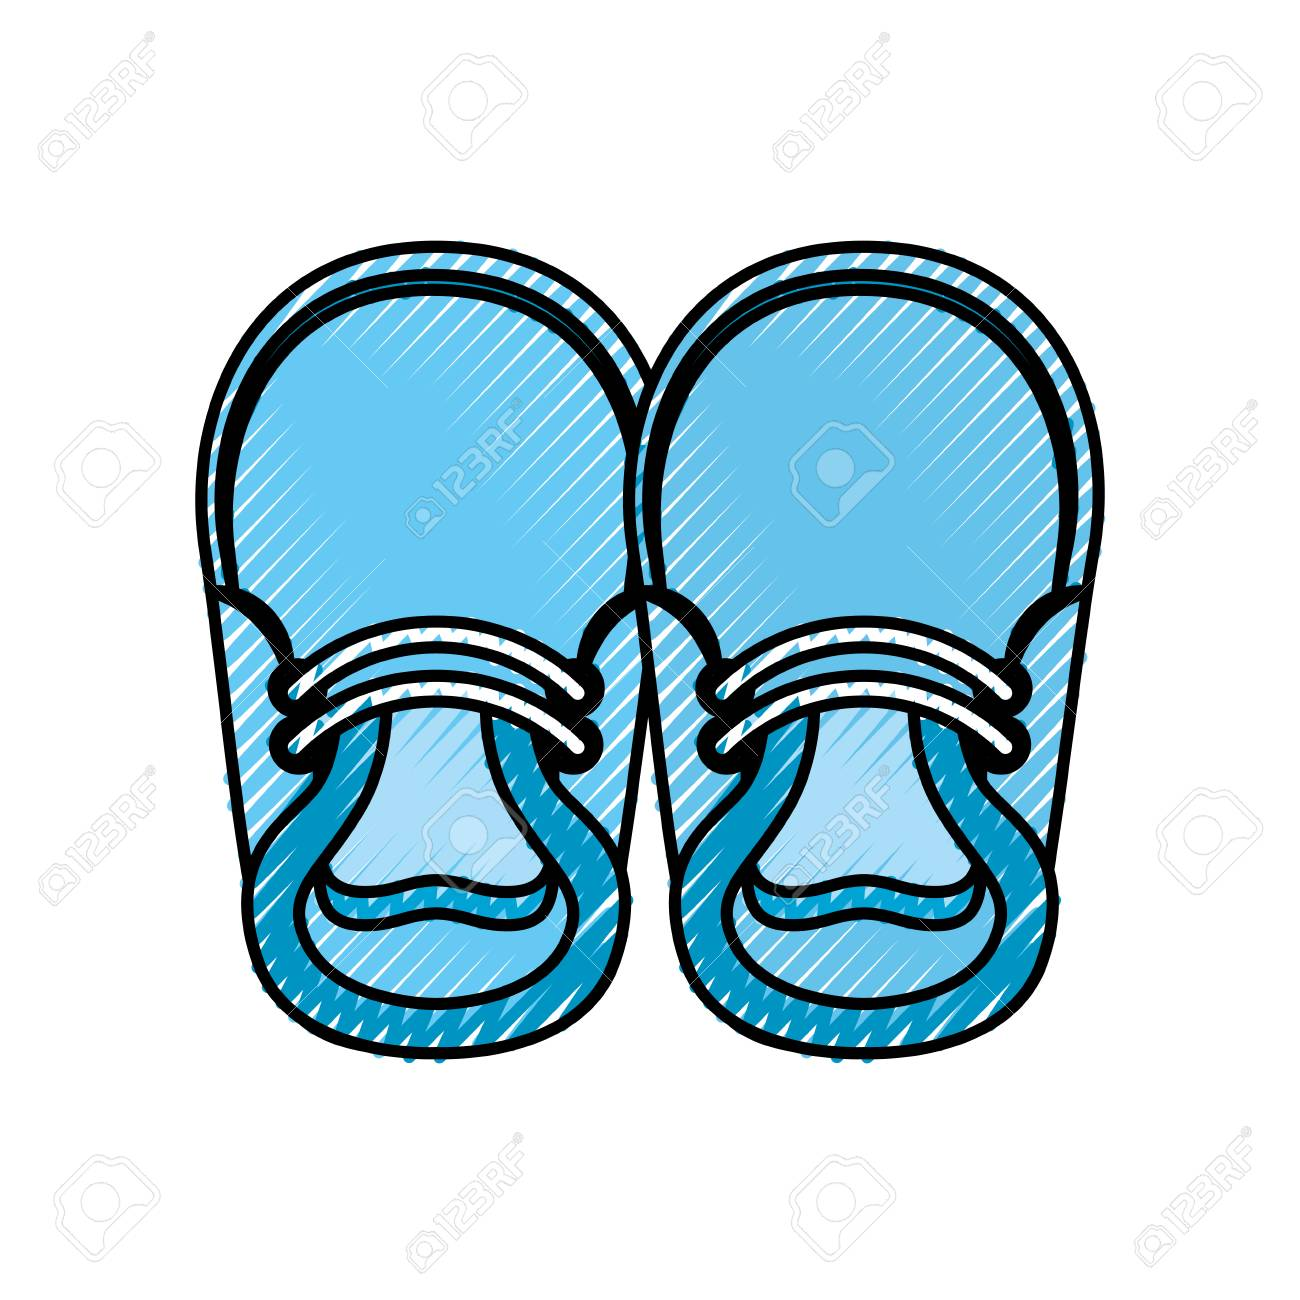 baby booties for boy child cute image vector illustration royalty rh 123rf com baby sandals clipart blue baby booties clipart